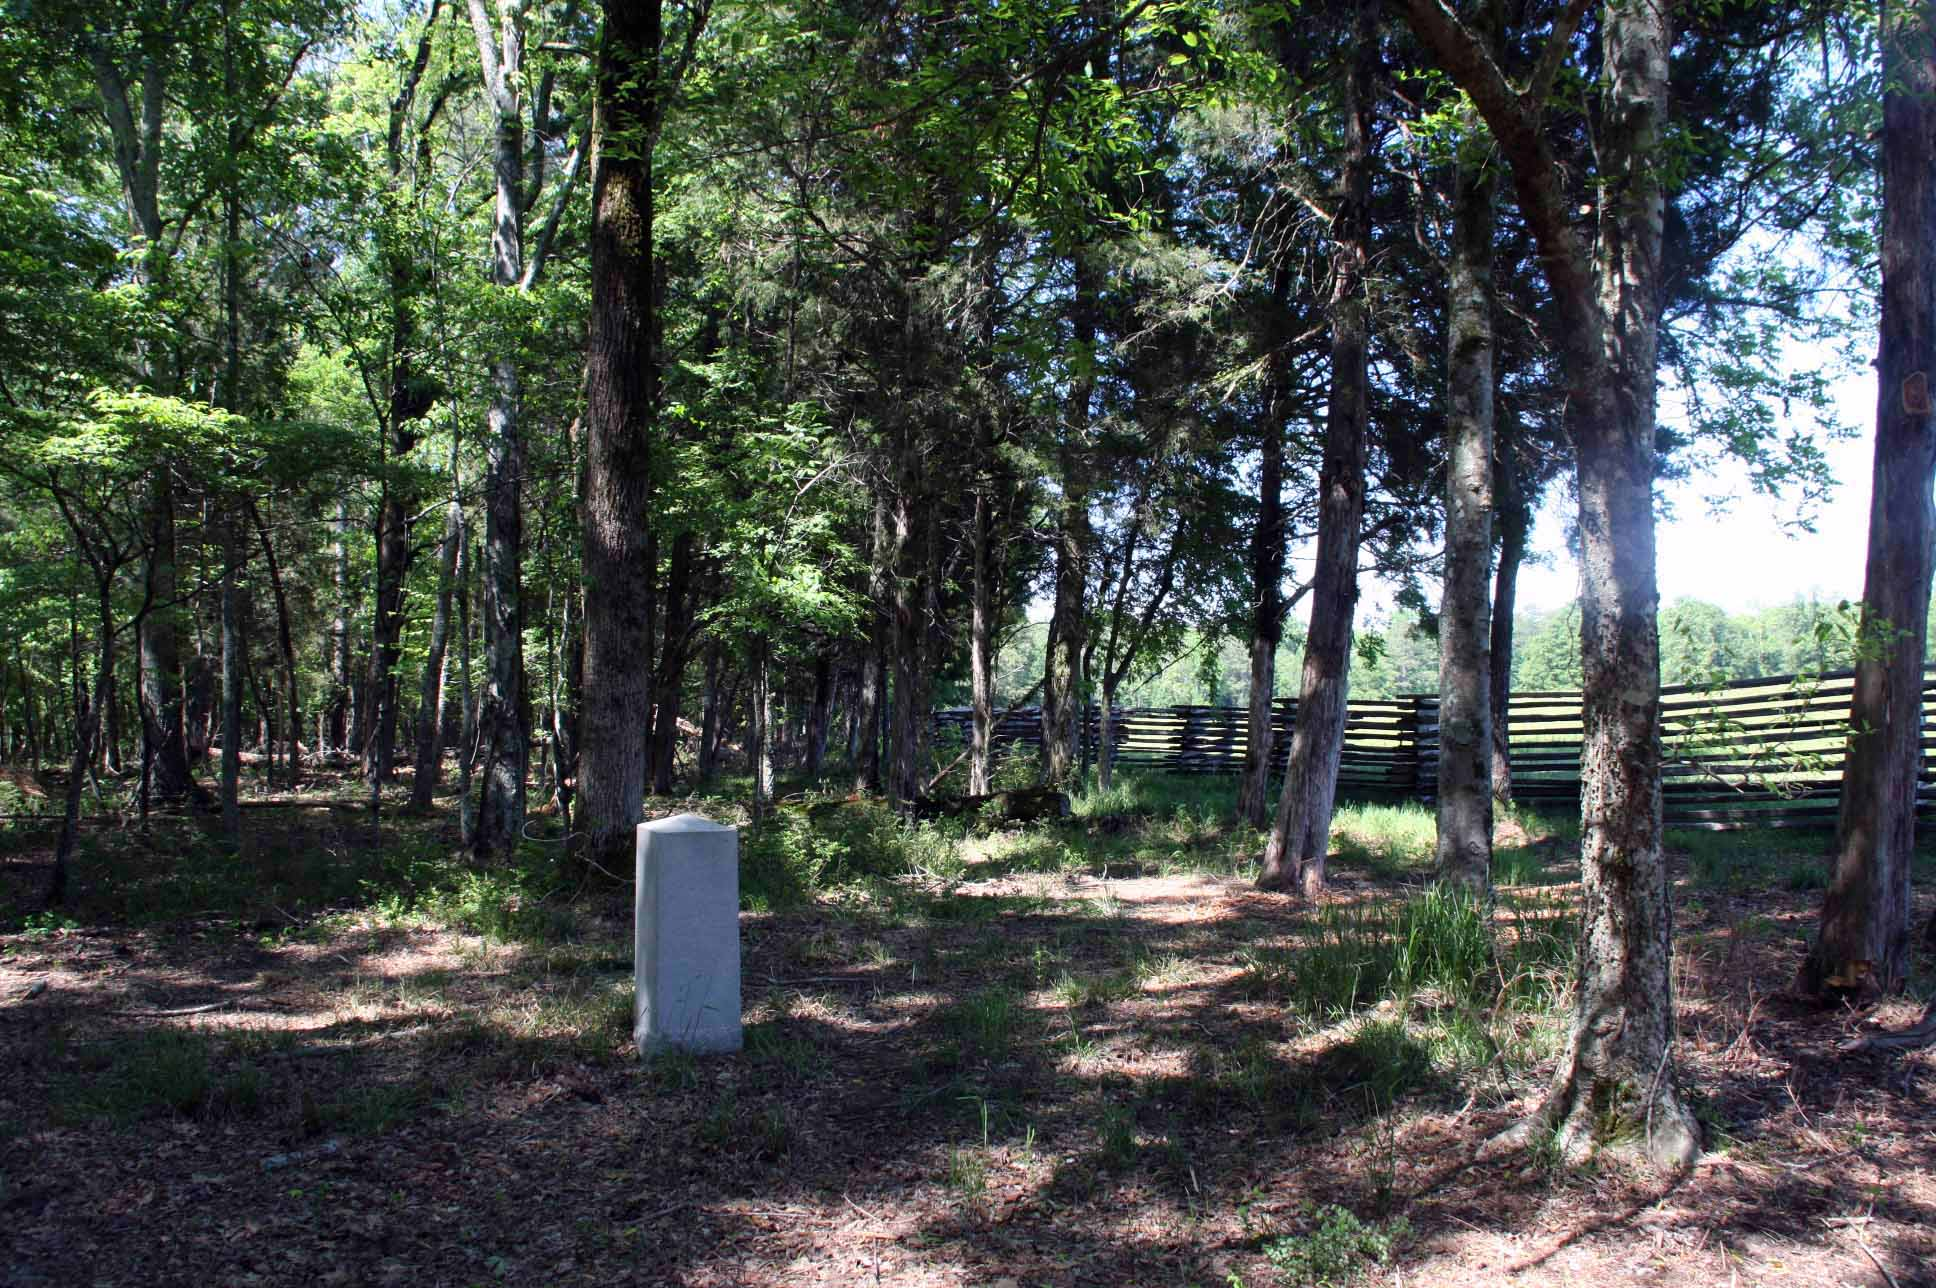 8th Kansas Volunteer Infantry Marker, click photo to enlarge.